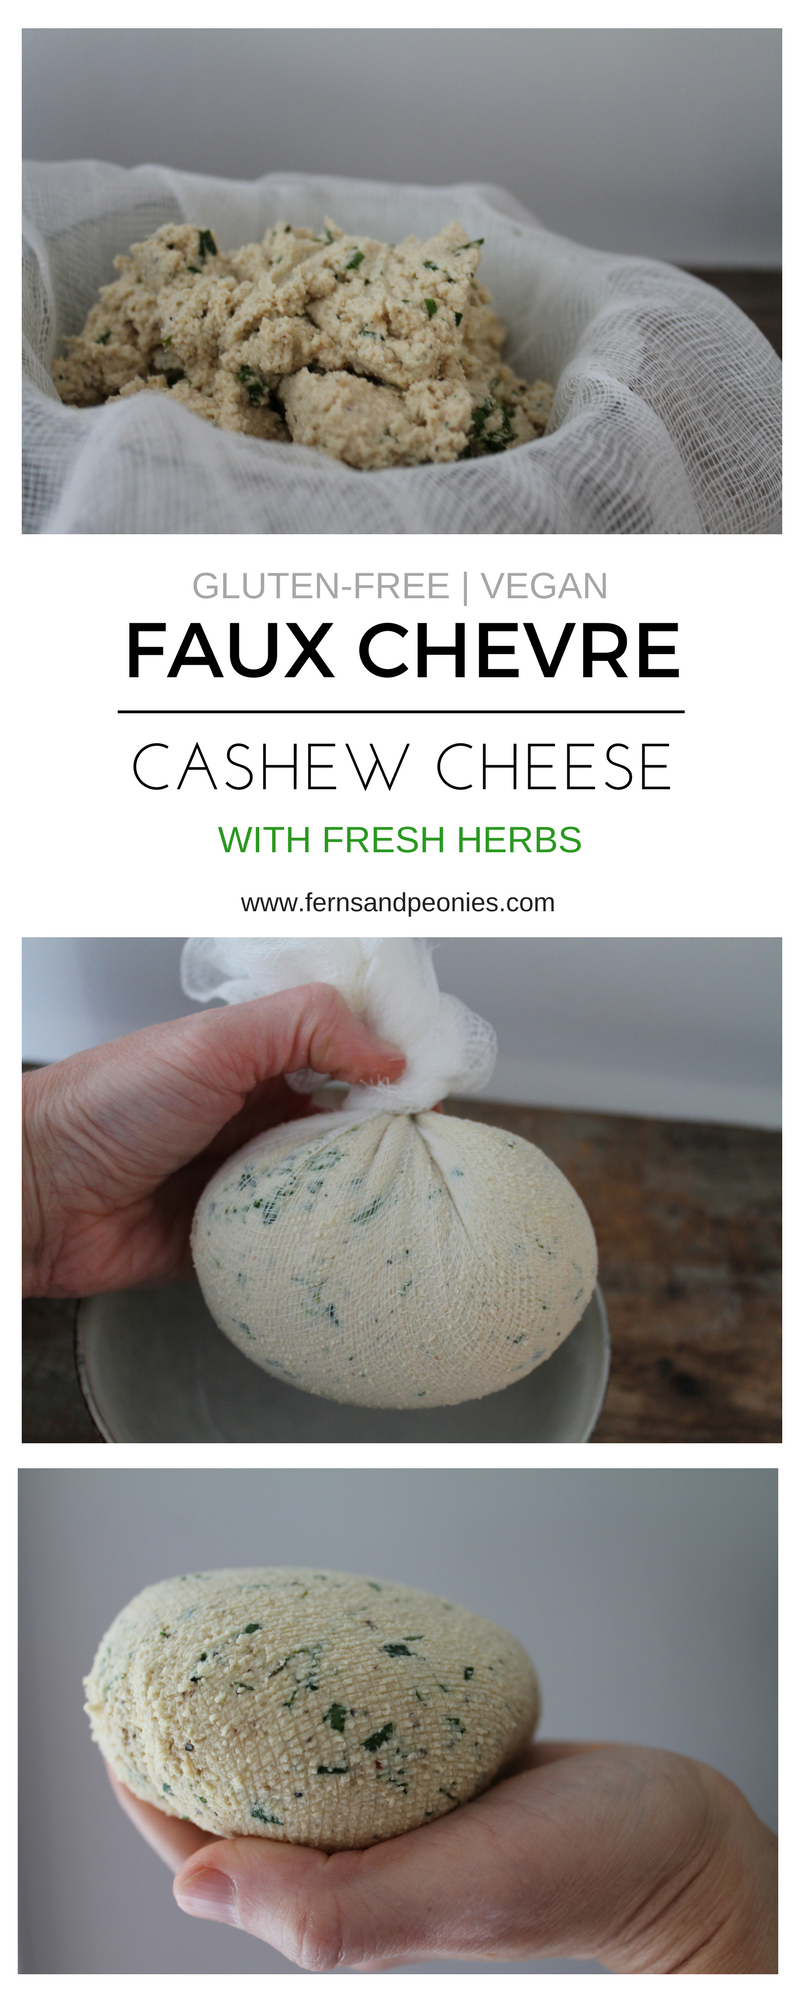 Faux Chevre Cashew Cheese with fresh herbs. Vegan, gluten-free, and raw. Find this recipe and more at www.fernsandpeonies.com